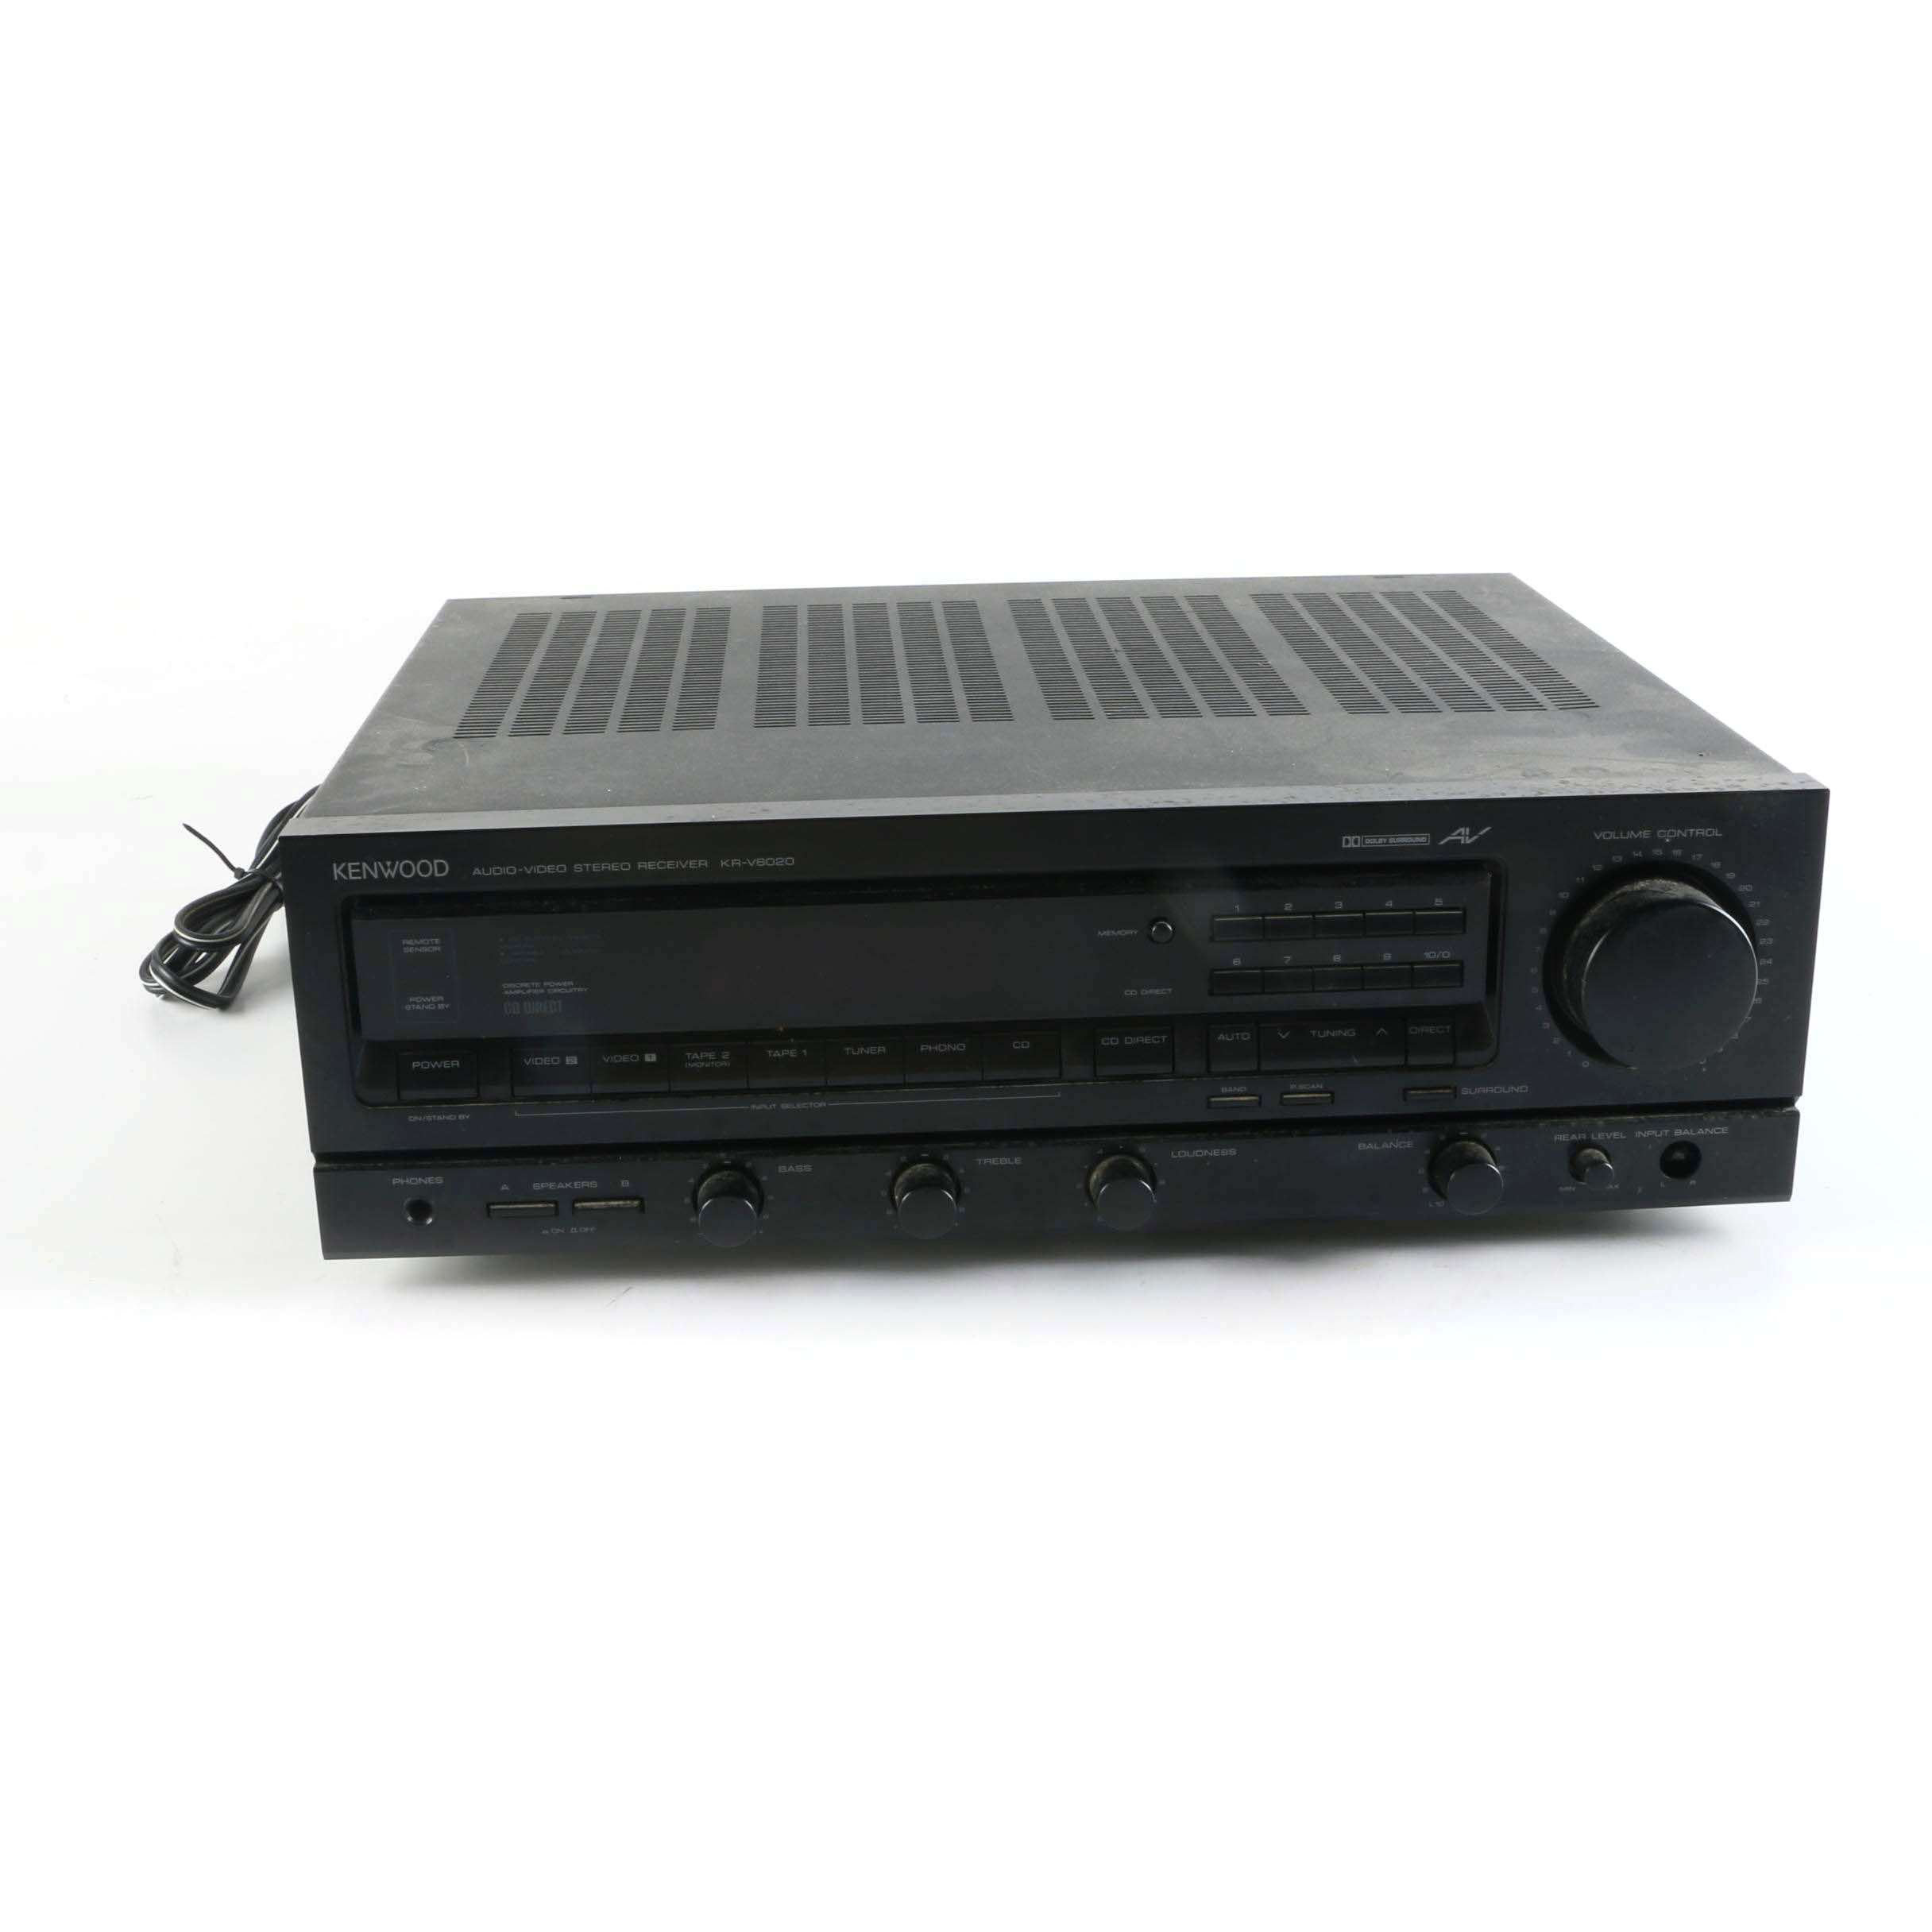 Kenwood Audio Video Stereo Receiver